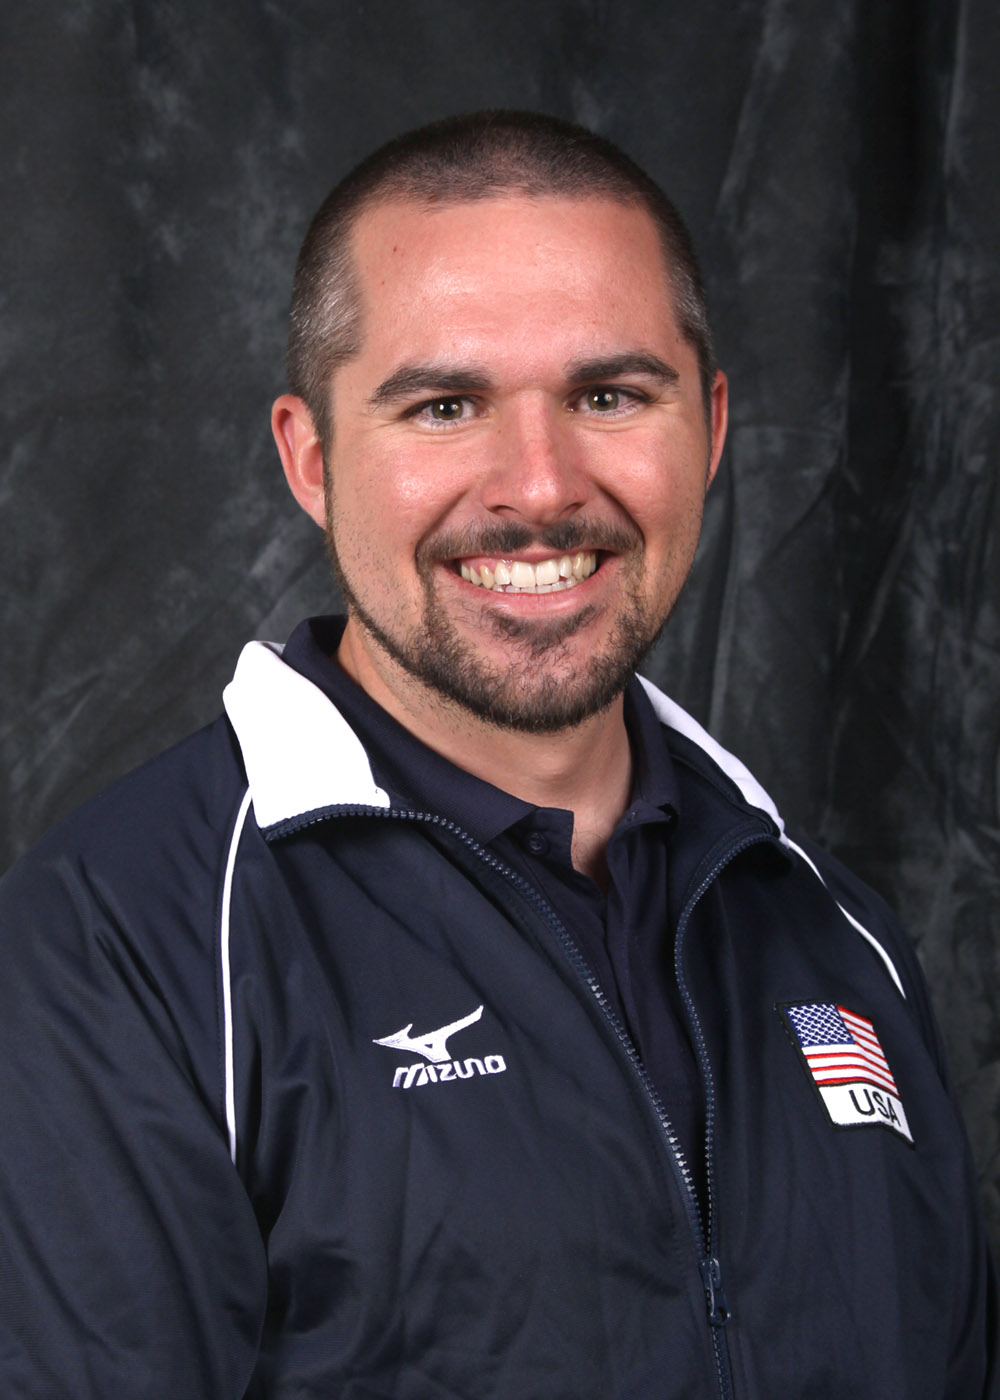 USA Sitting Volleyball named Quinton Kraeer the new head coach of the U.S. men's sitting volleyball team, which trains at the University of Central Oklahoma.